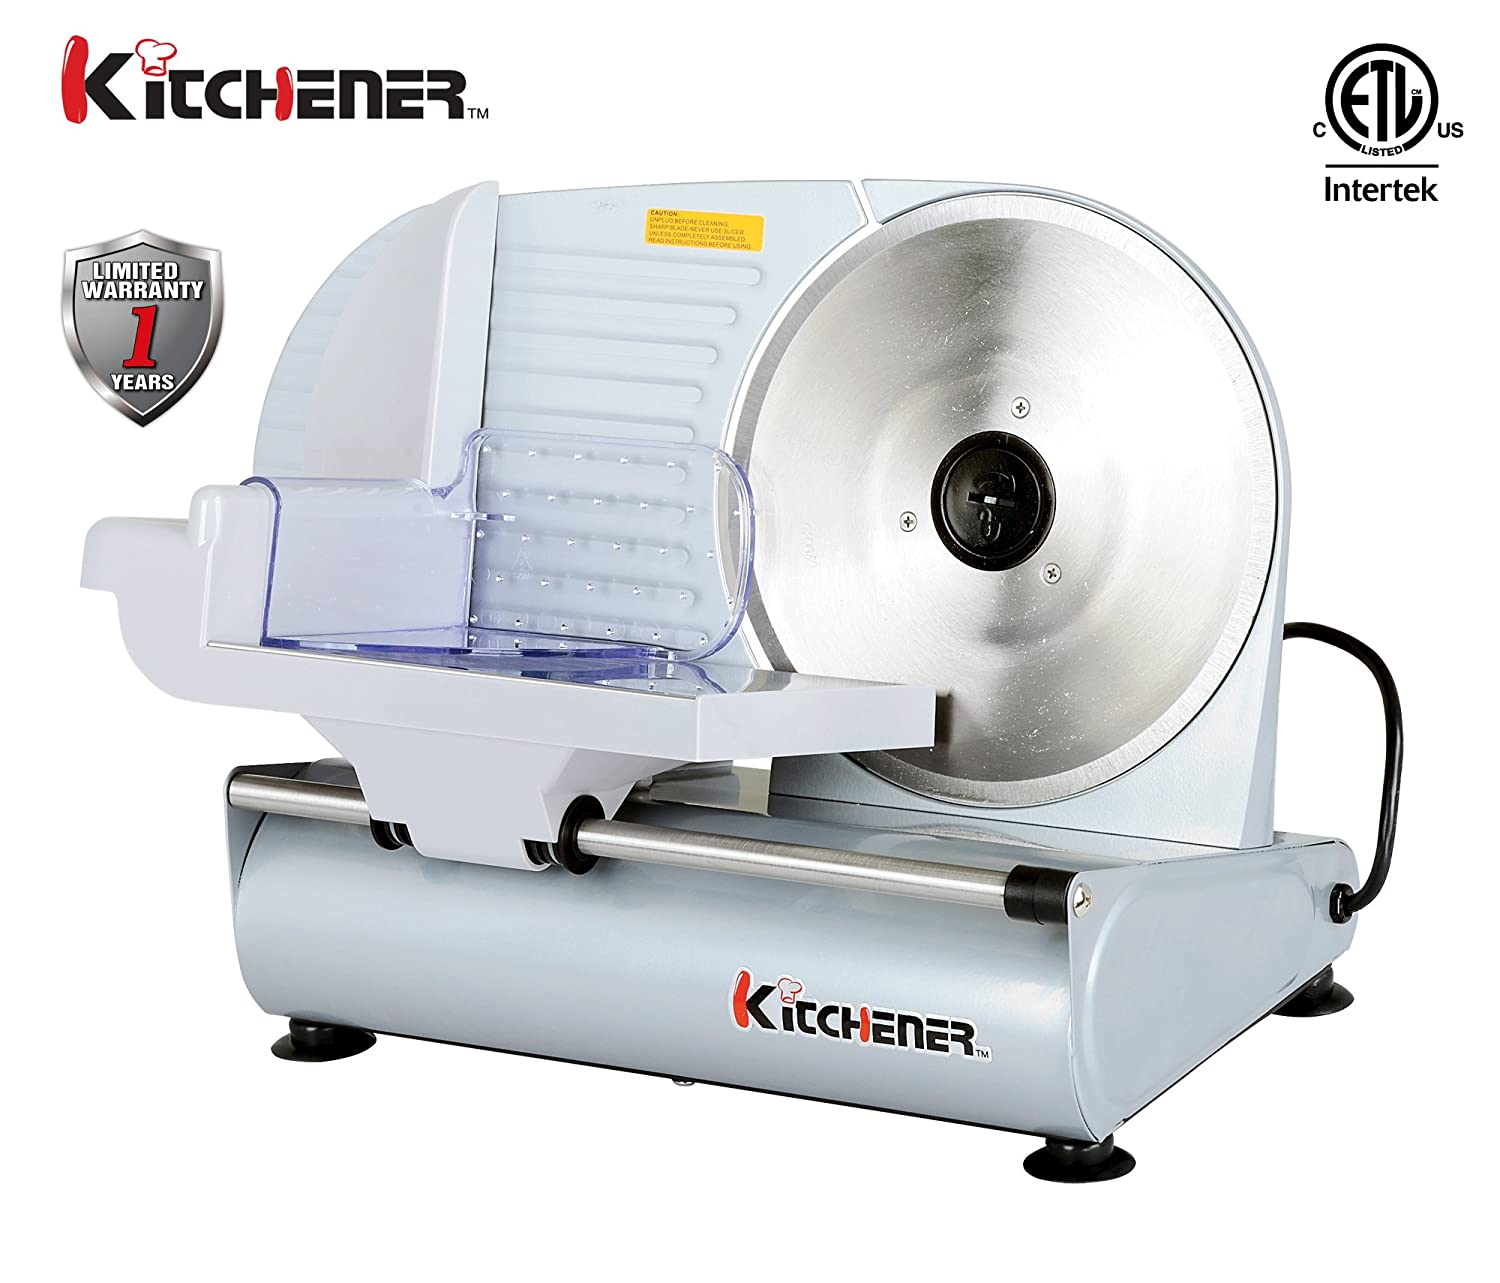 Amazon.com: Kitchener 9-inch Professional Electric Meat Deli Cheese ...